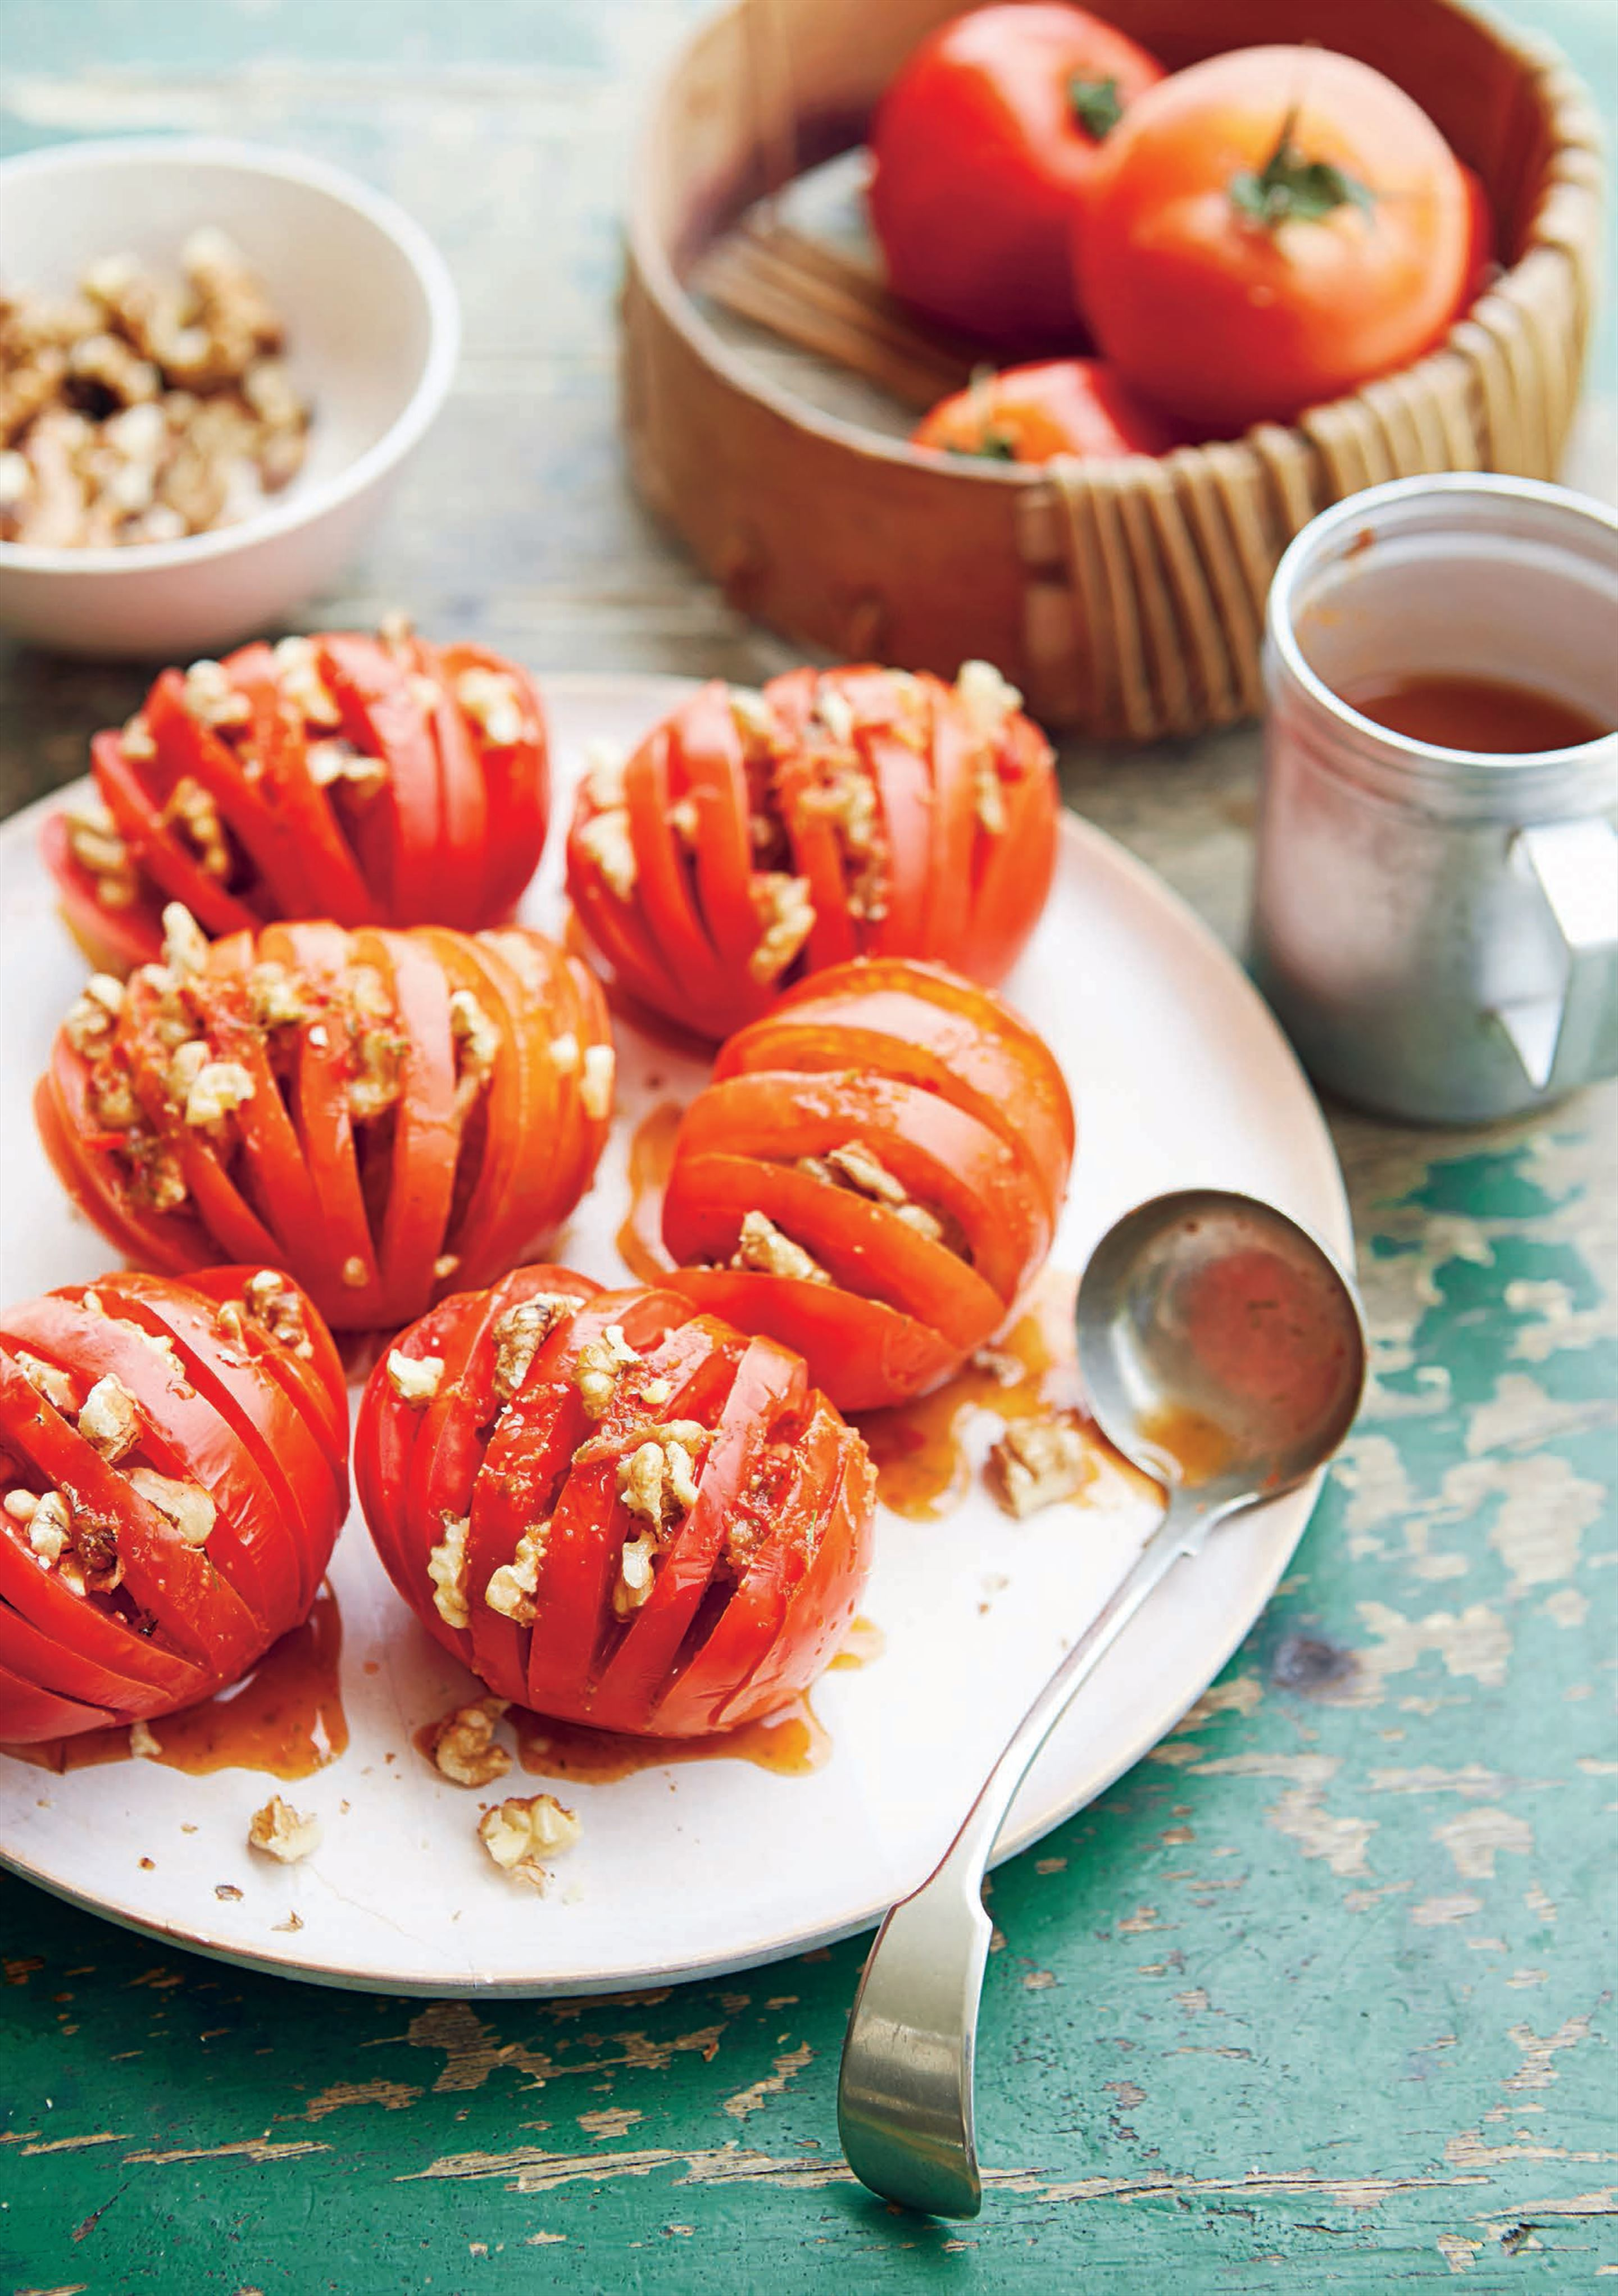 Tomato walnut salad